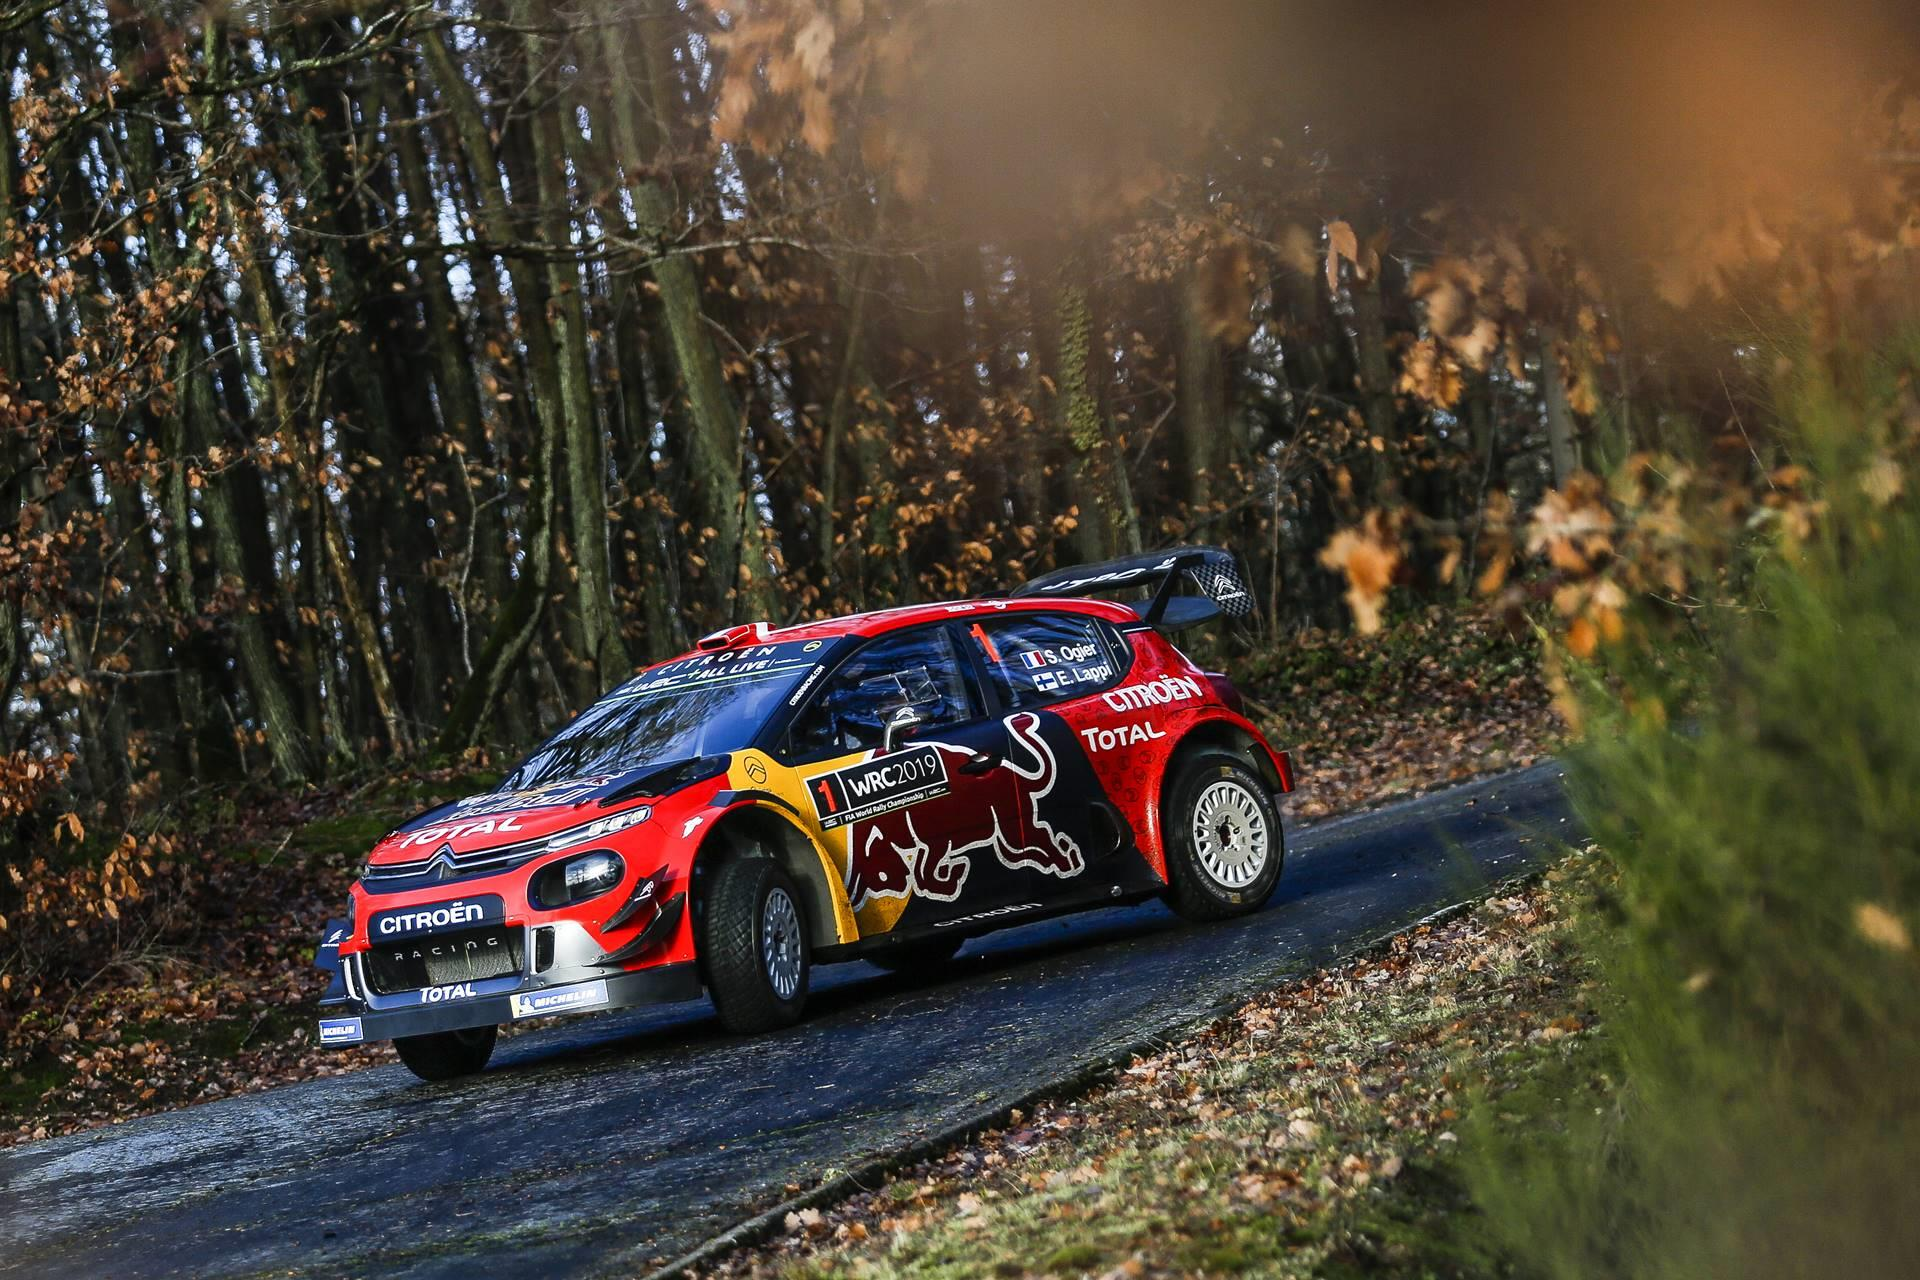 Antique Vintage Cars >> 2019 Citroen C3 WRC News and Information, Research, and Pricing